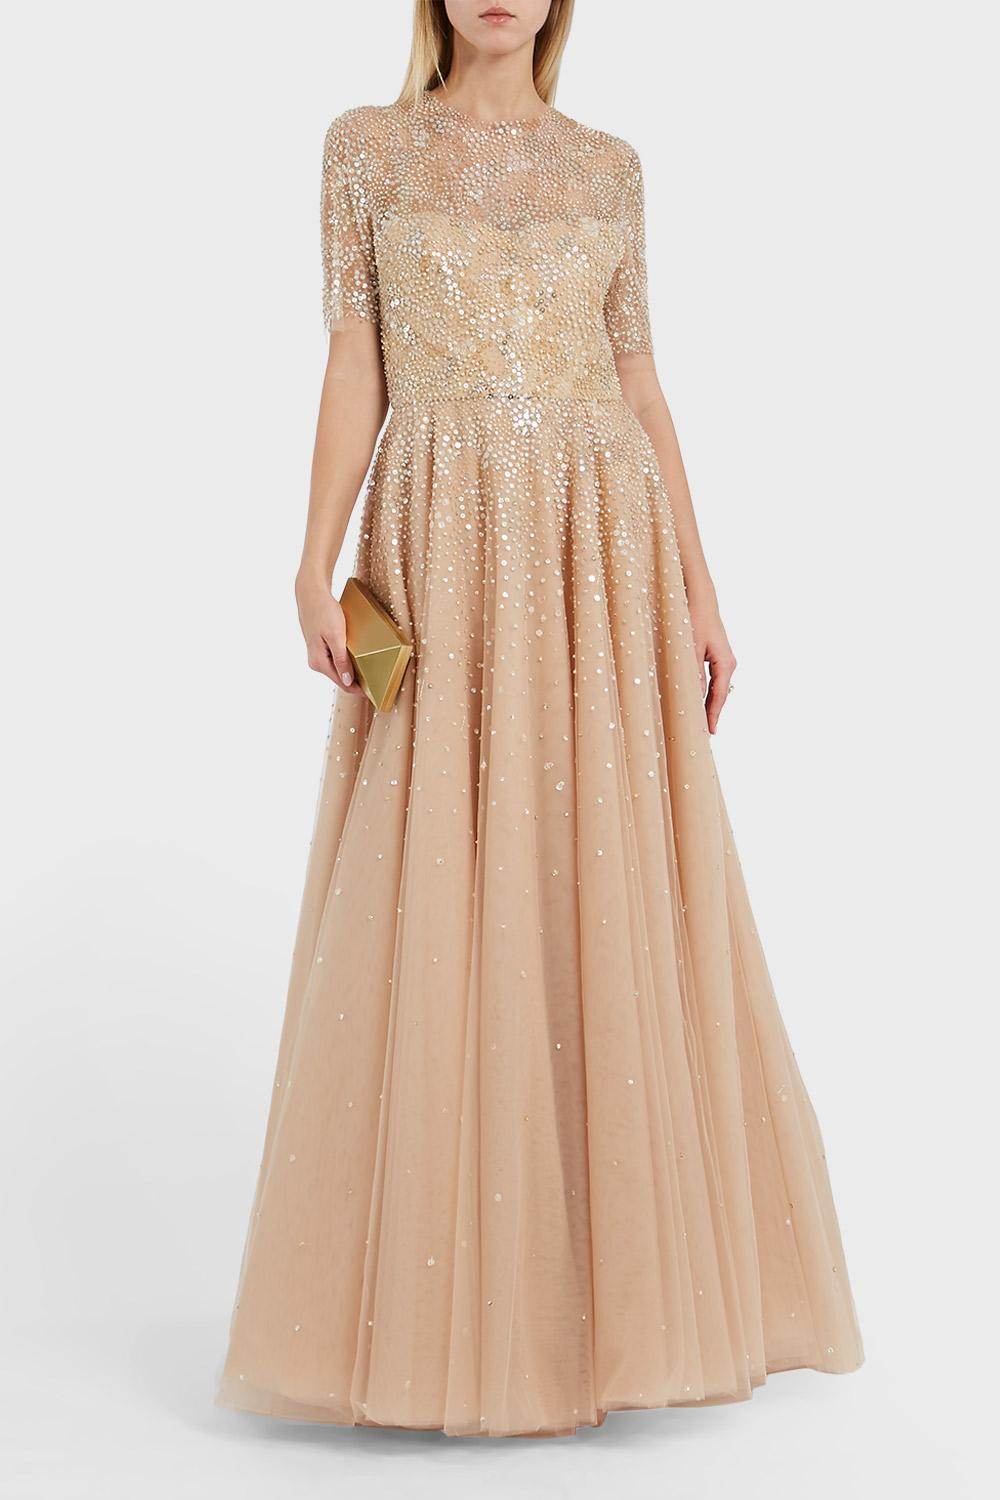 REEM ACRA EMBELLISHED TULLE DRESS, SIZE US8, WOMEN, METALLIC